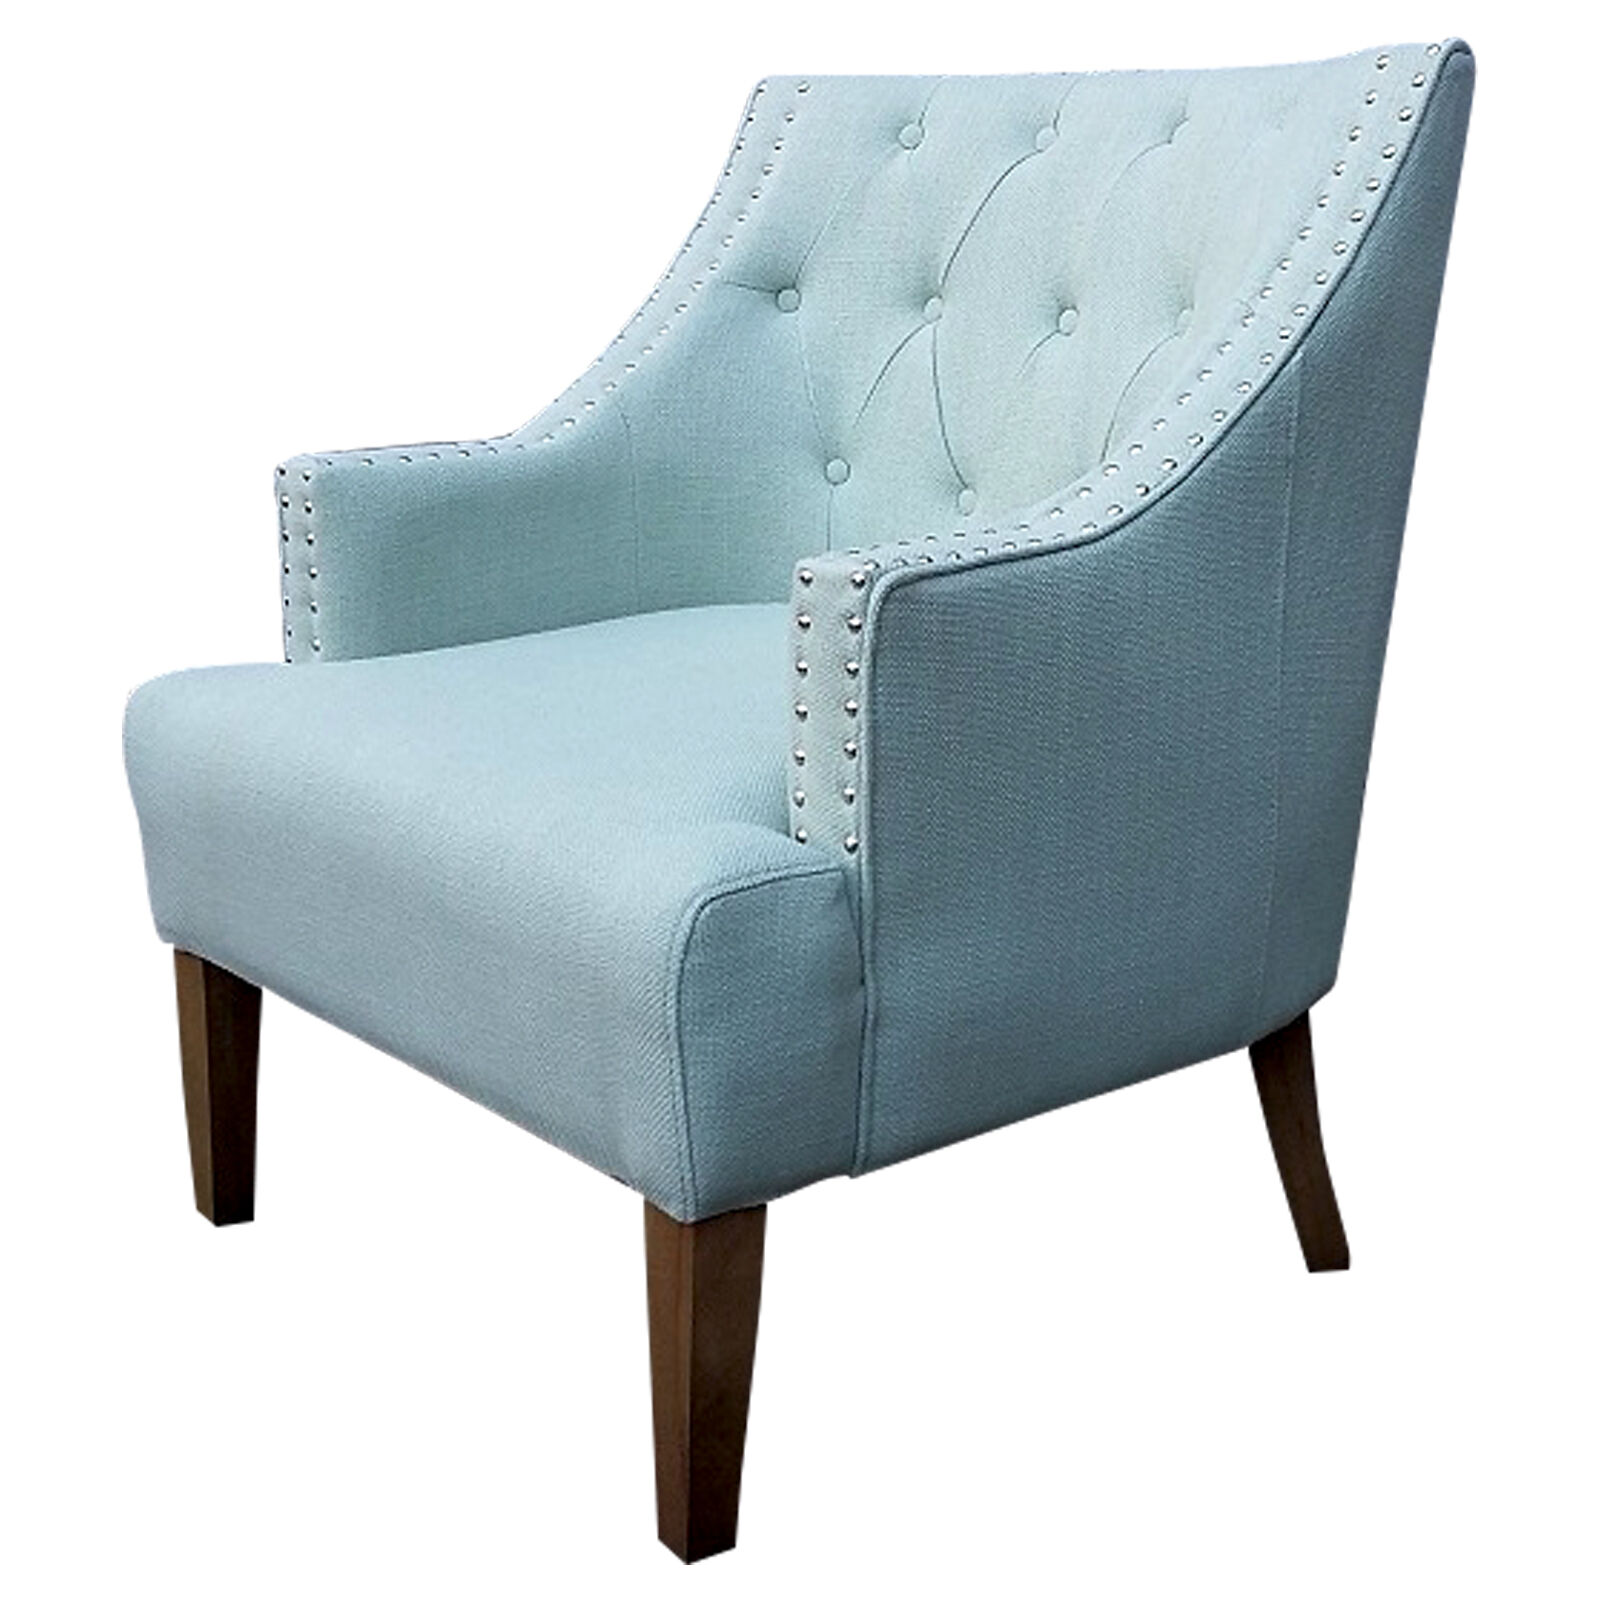 tufted blue chair office buy online torrei spa at home